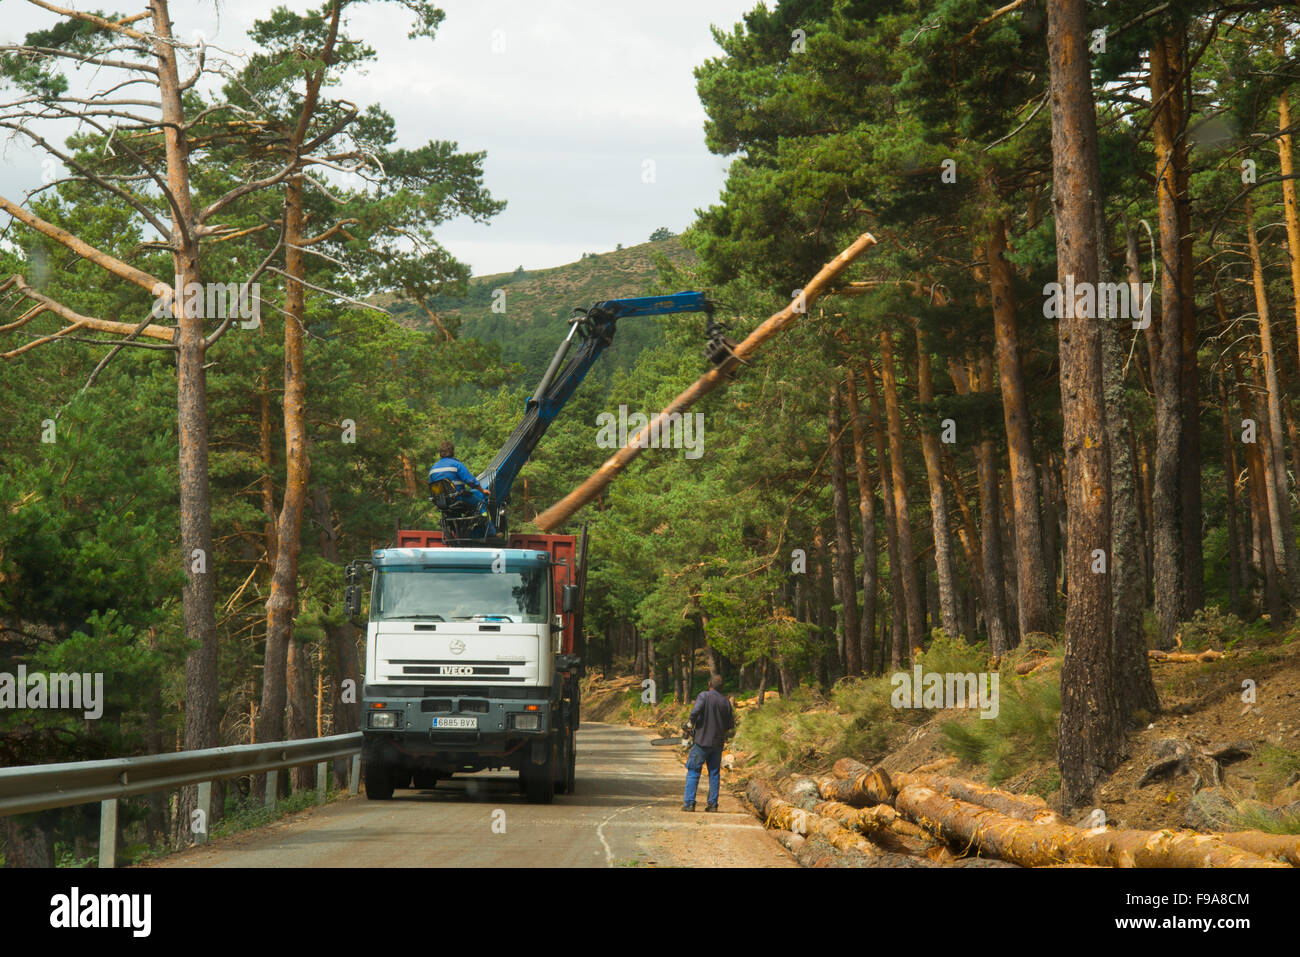 Timber industry. Navafria Mountain Pass, Madrid province, Spain. - Stock Image